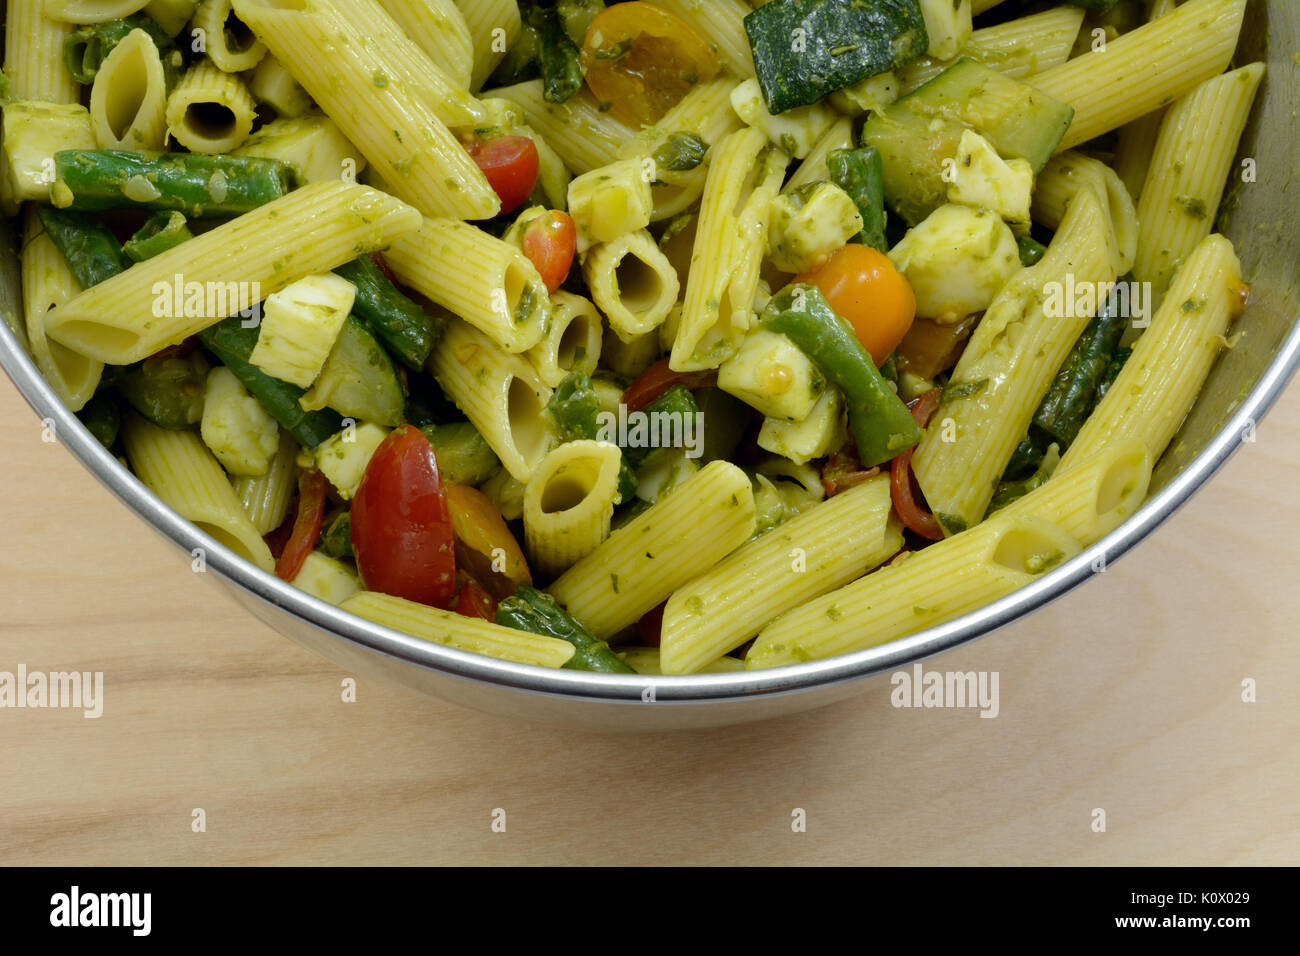 Close up of pesto penne pasta salad with zucchini, tomatoes, green beans and mozzarella cheese in mixing bowl Stock Photo